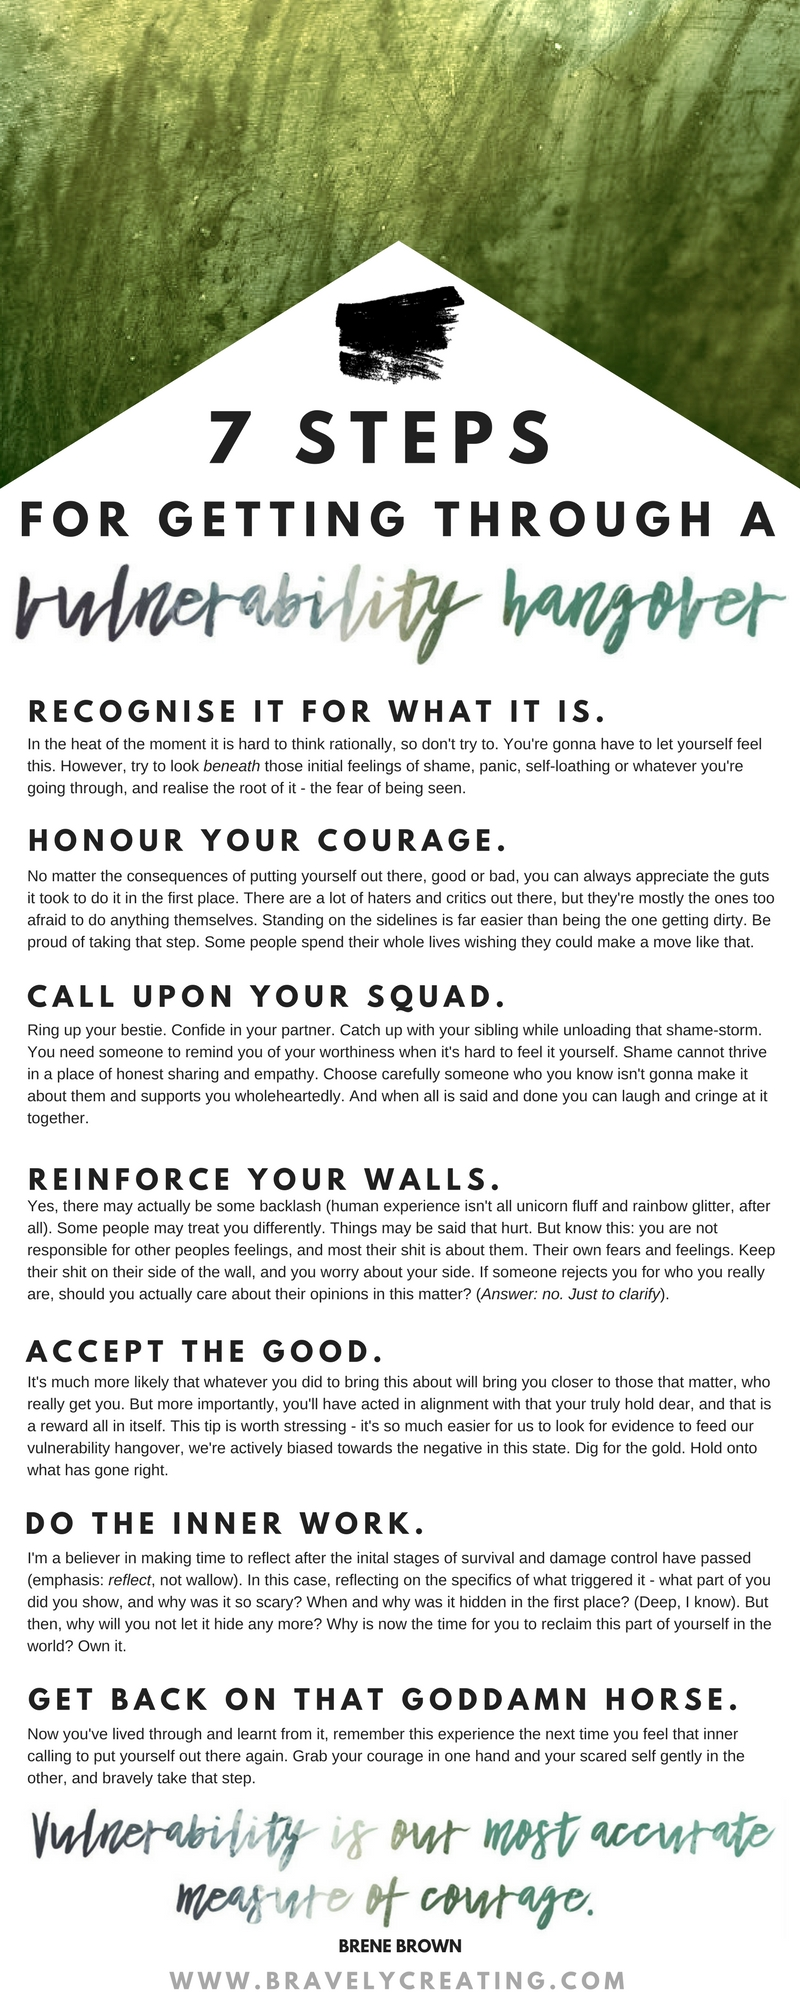 7 steps for getting through a